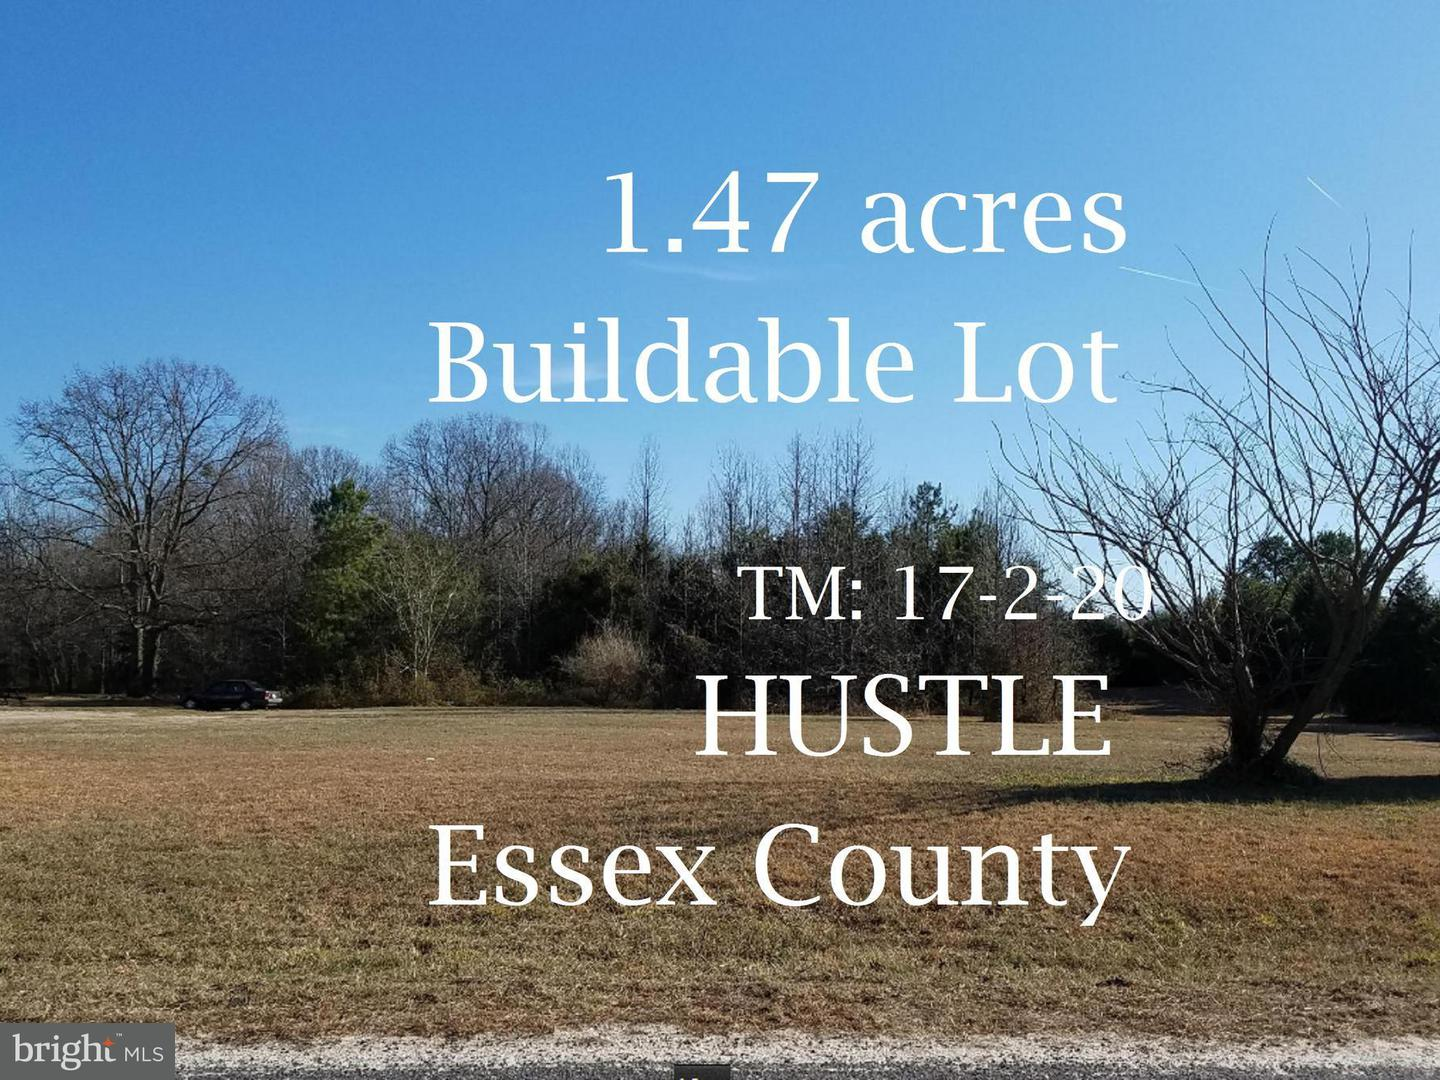 Land for Sale at 0 Rose Mount Rd - Fronts On 635 Hustle, Virginia 22476 United States